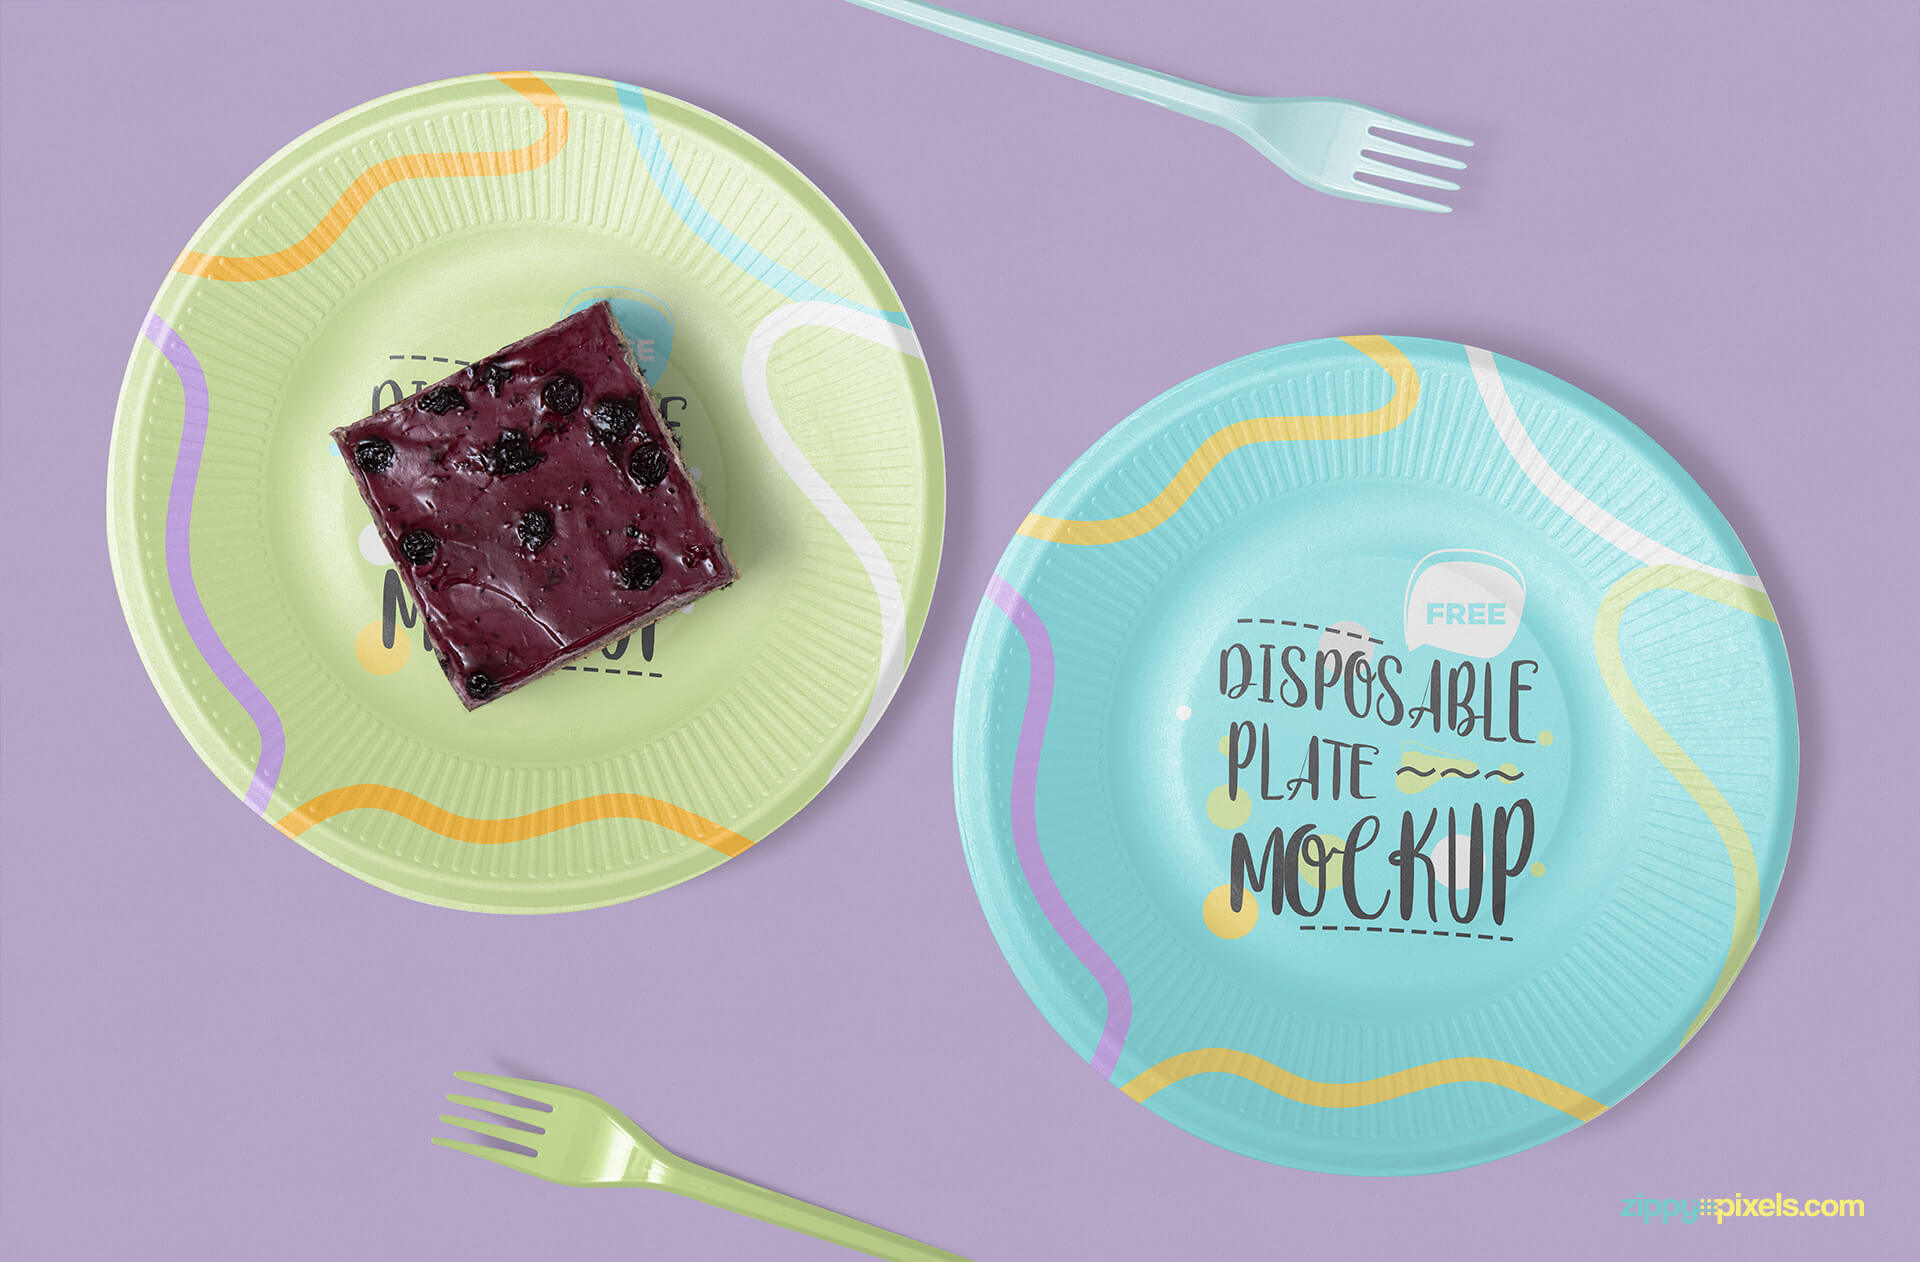 Free Disposable Plate Mockup PSD Template